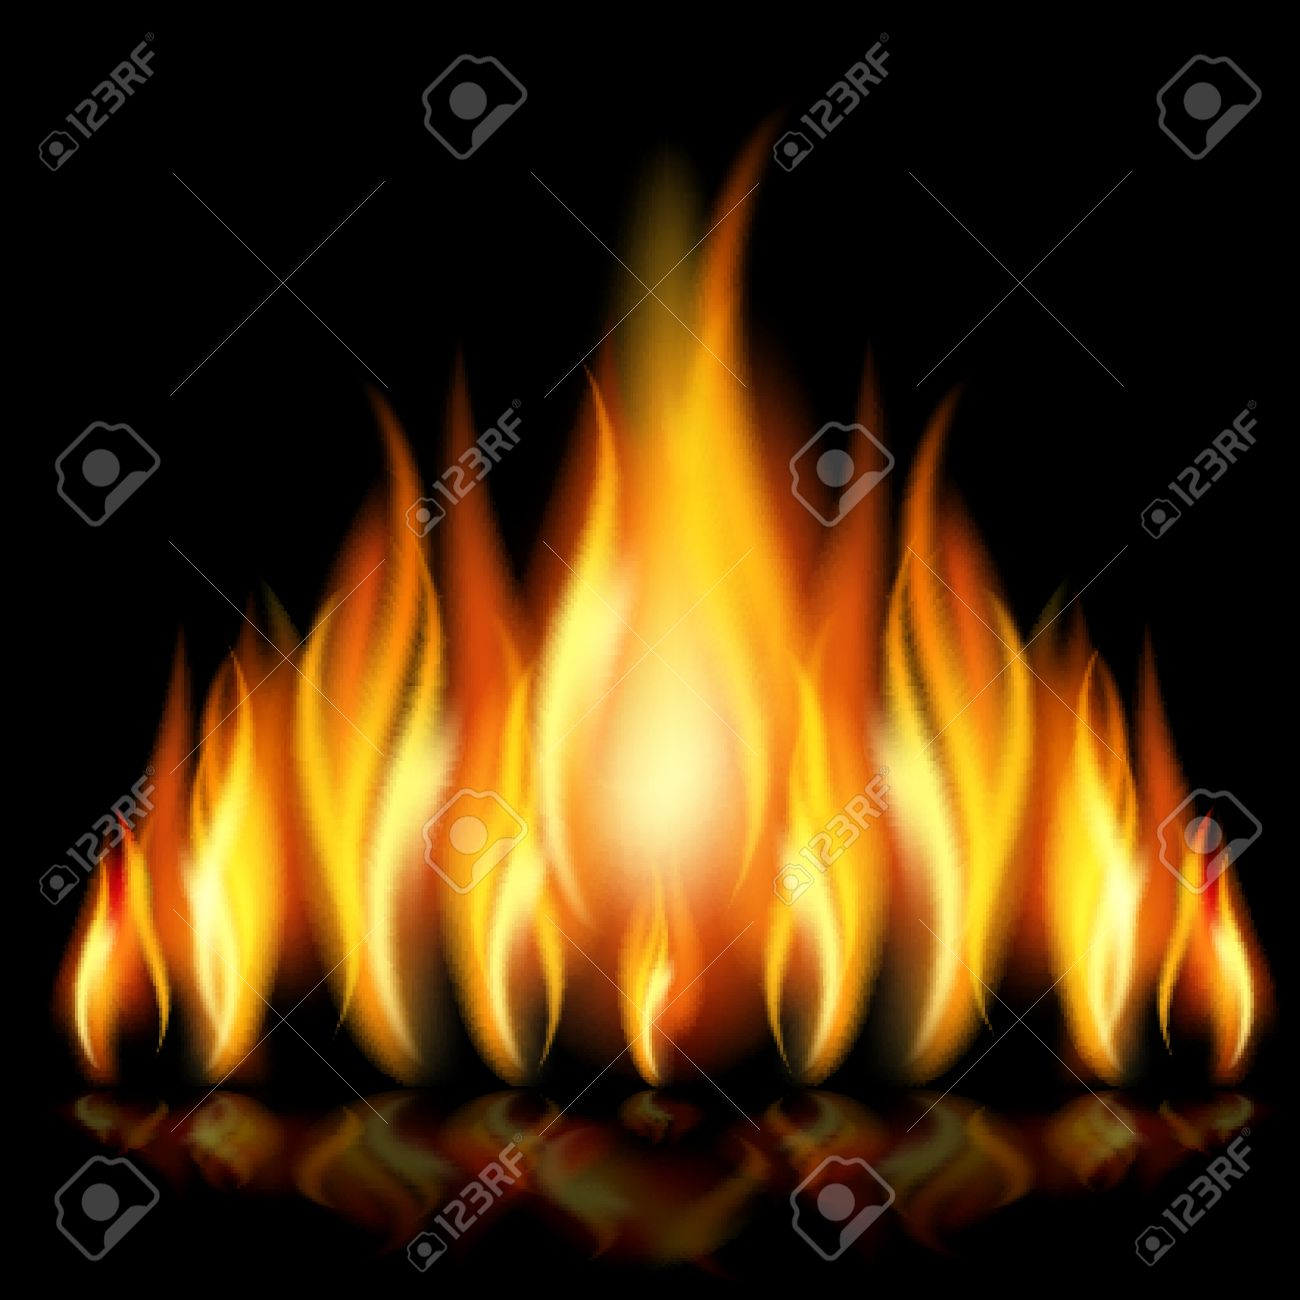 Flames of different shapes on a black background. - 11218741